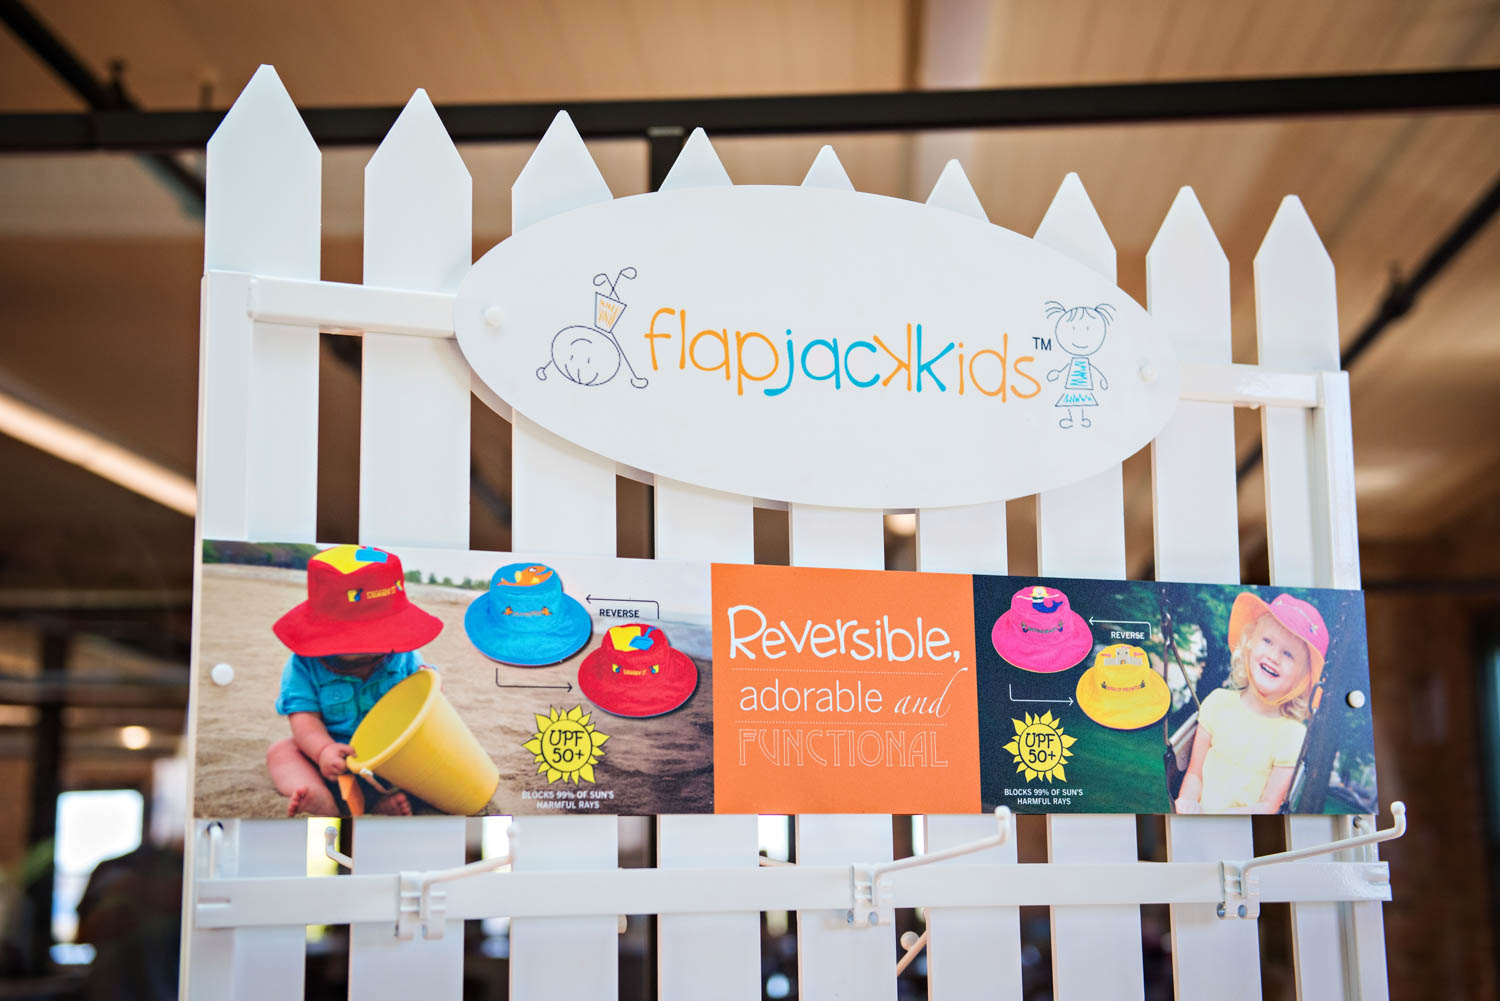 In Store Displays for Flapjack Kids